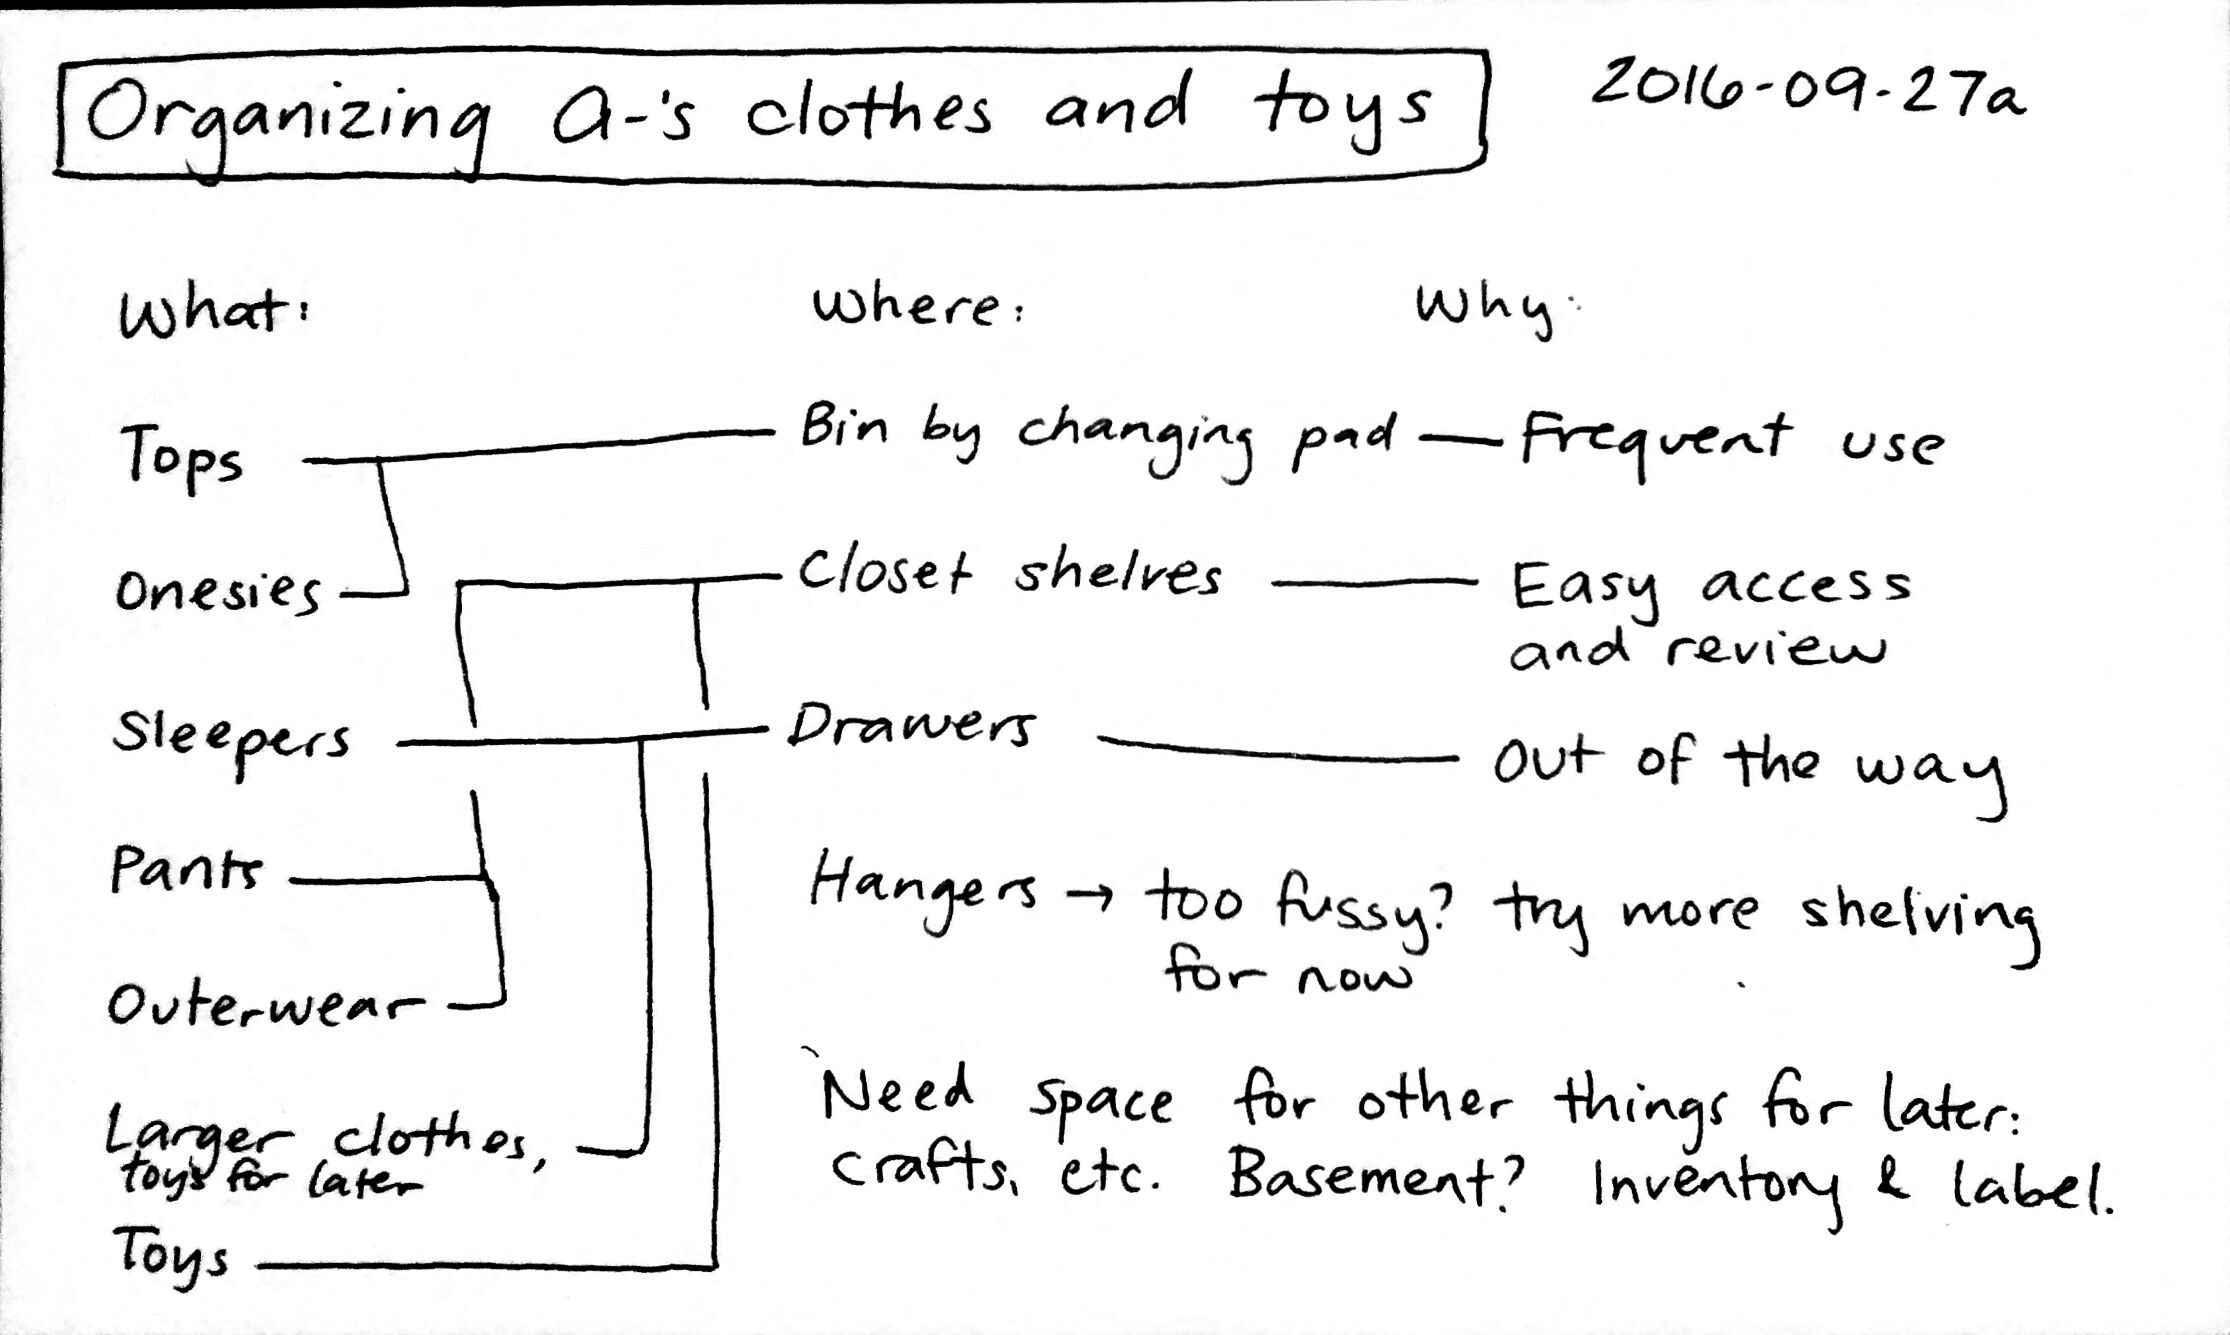 2016-09-27a Organizing A-'s clothes and toys #organization #parenting #clothing.jpg